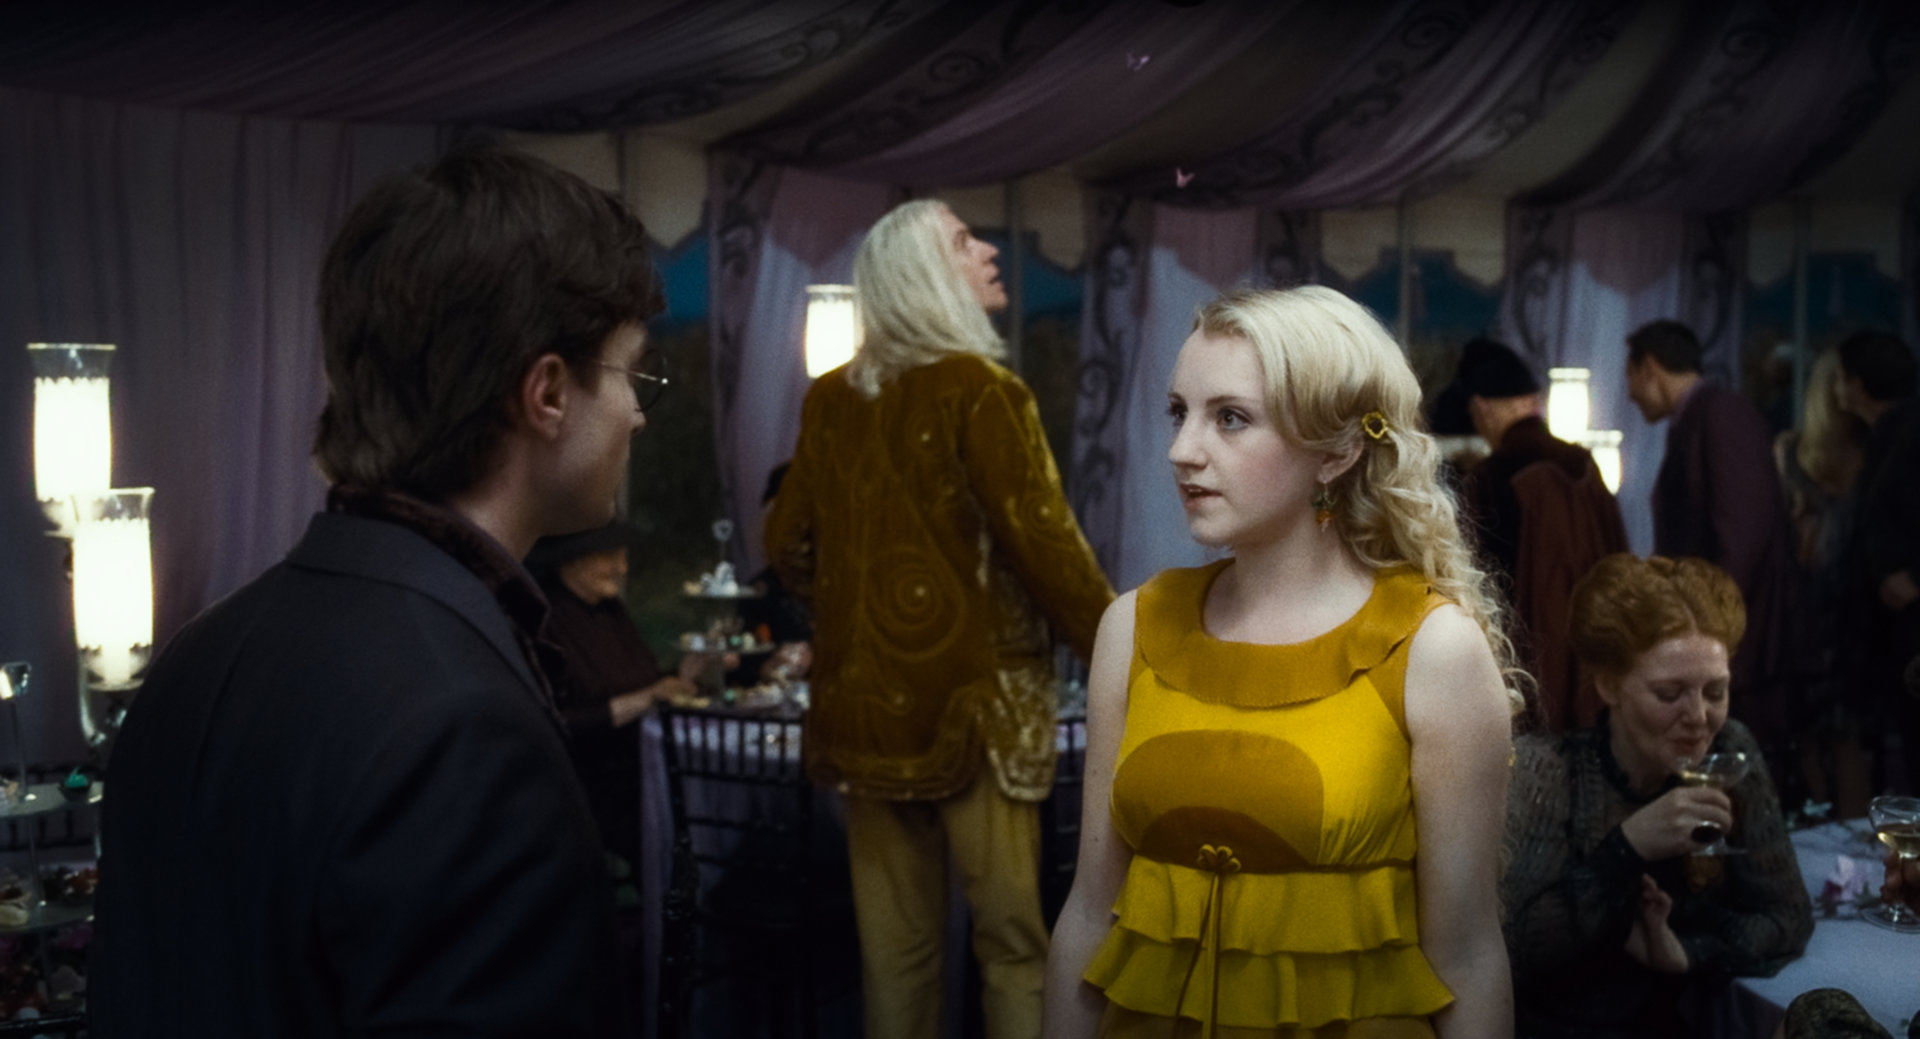 File:Deathly-hallows-daniel-radcliffe-evanna-lynch-photo.jpg